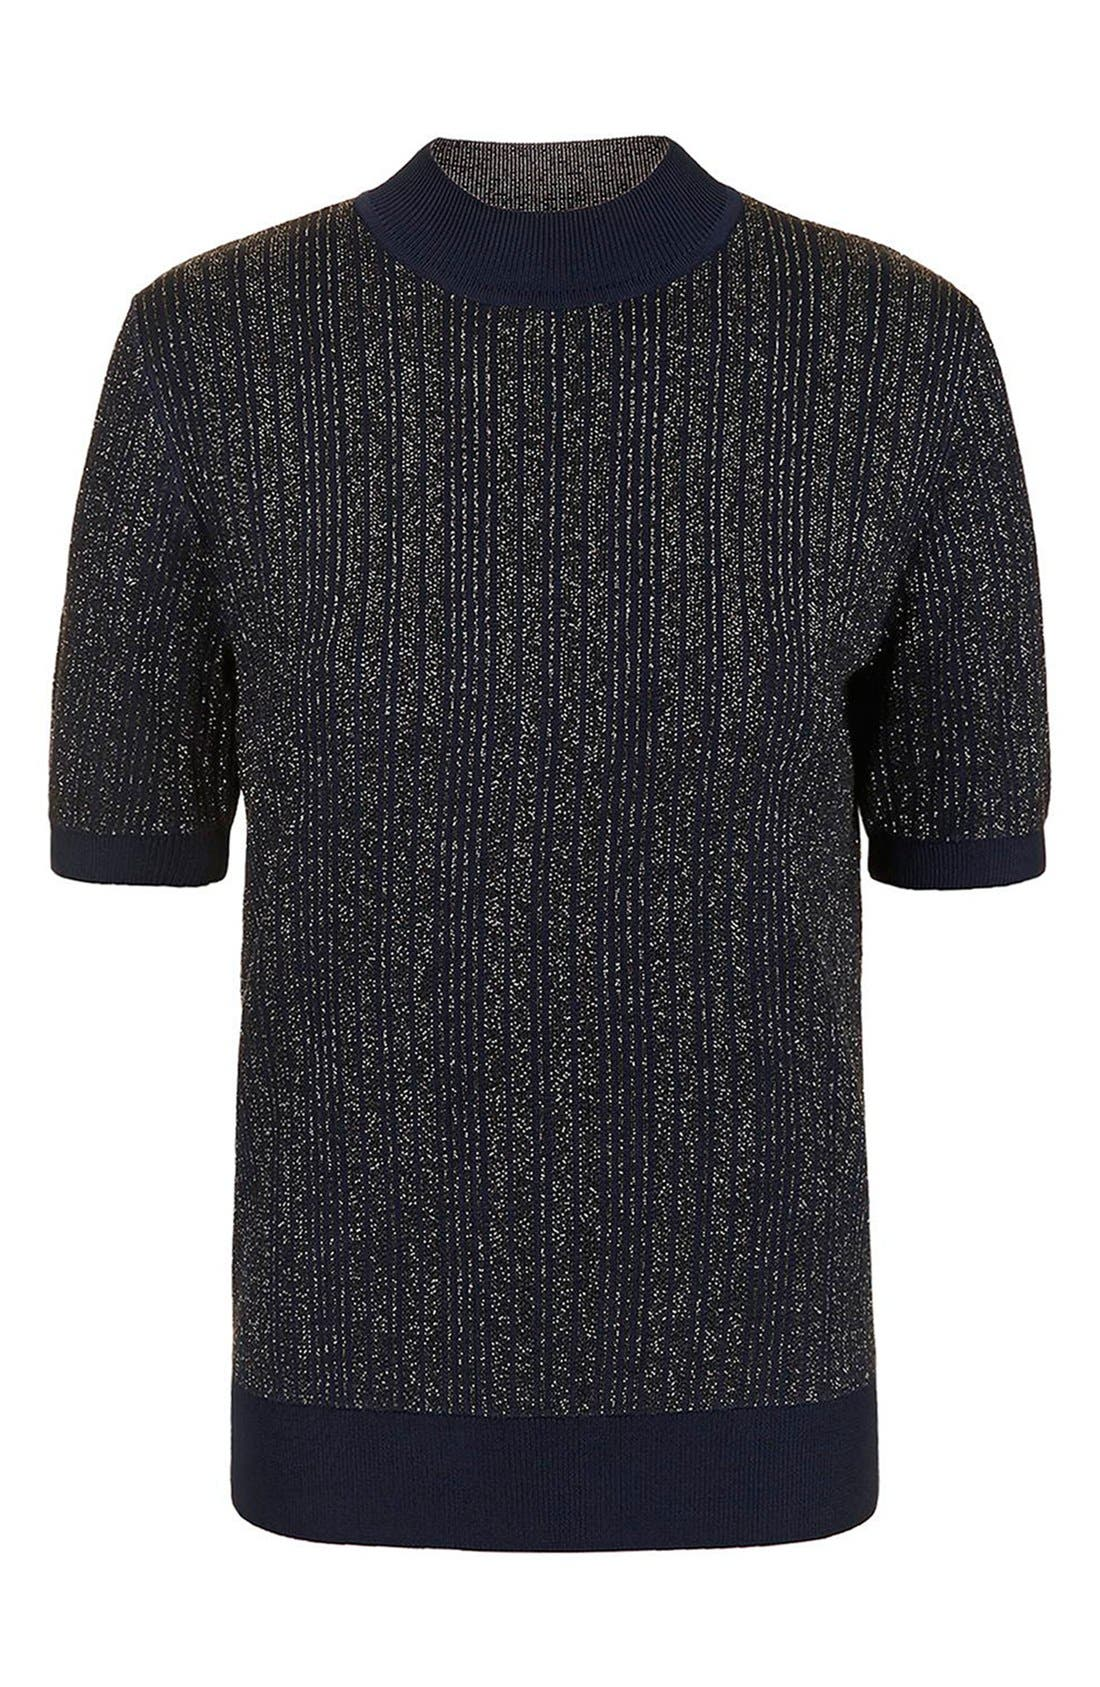 Alternate Image 5  - Topshop Unique 'Lamont' Short Sleeve Metallic Stripe Sweater